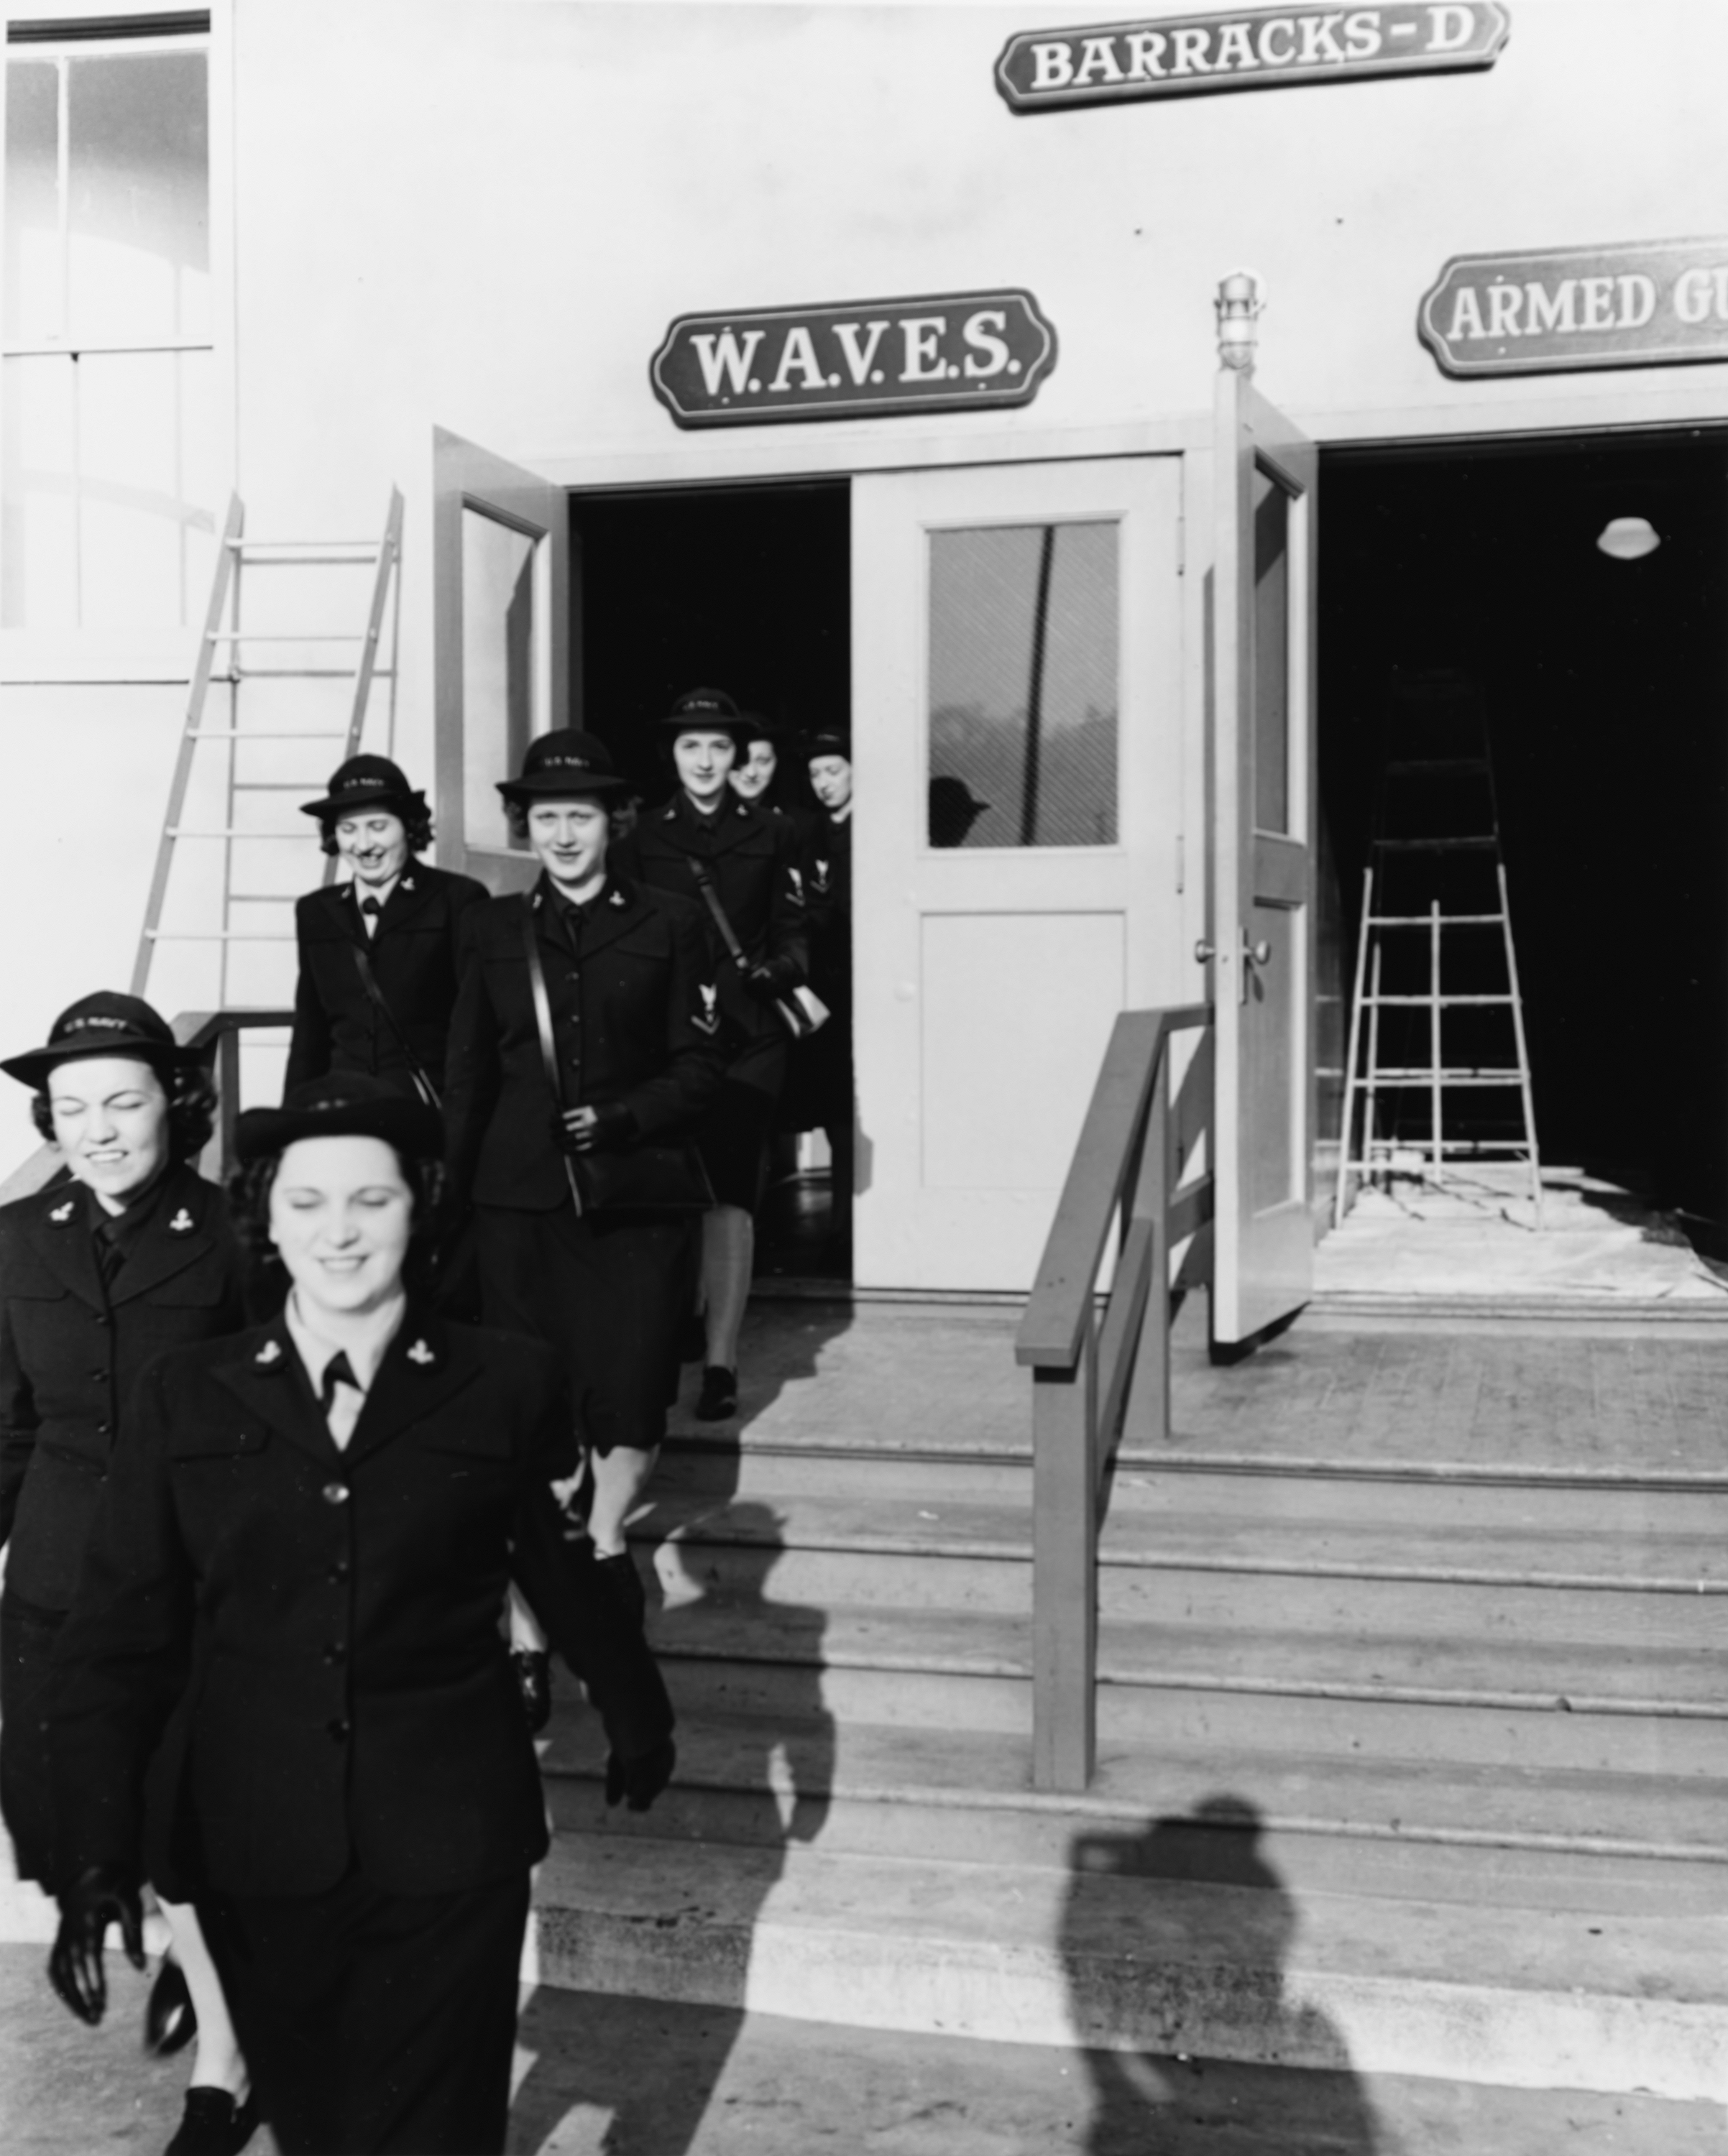 WAVES Leaving Barracks at NAAF Treasure Island